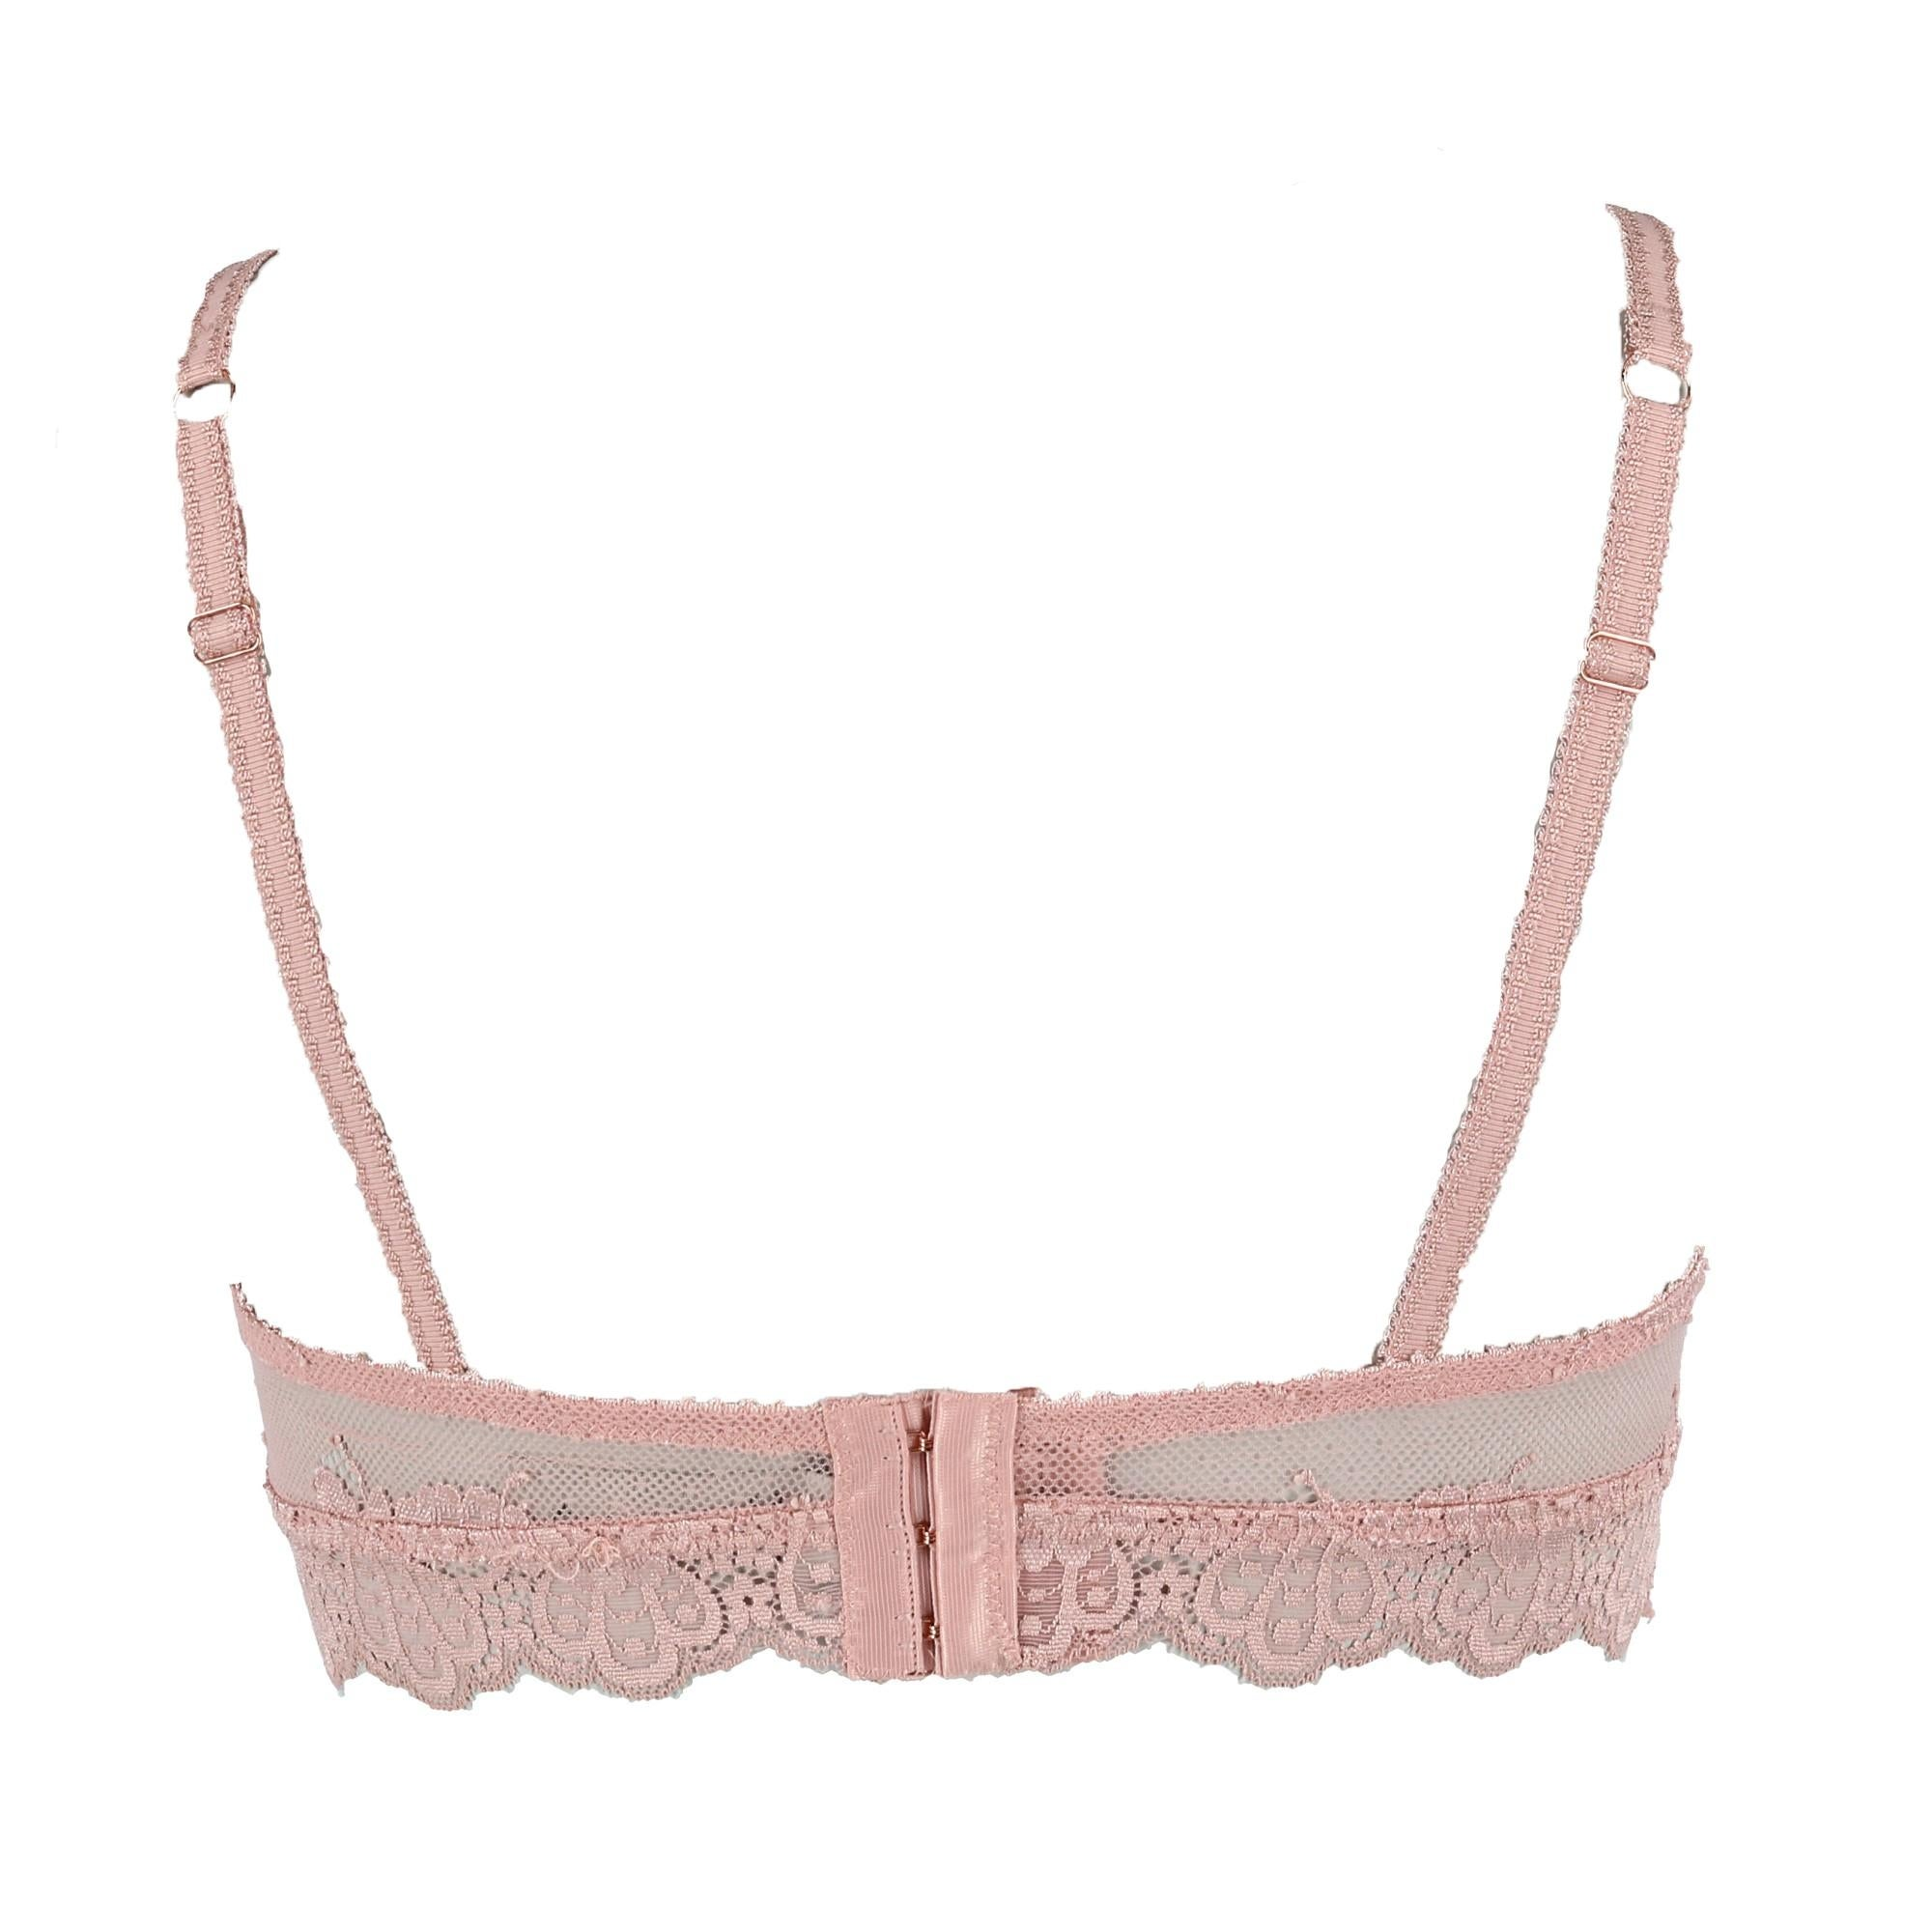 3685954dac4 Shop Rene Rofe Women s Lace Trim Bralette - Free Shipping On Orders Over   45 - Overstock - 25459856